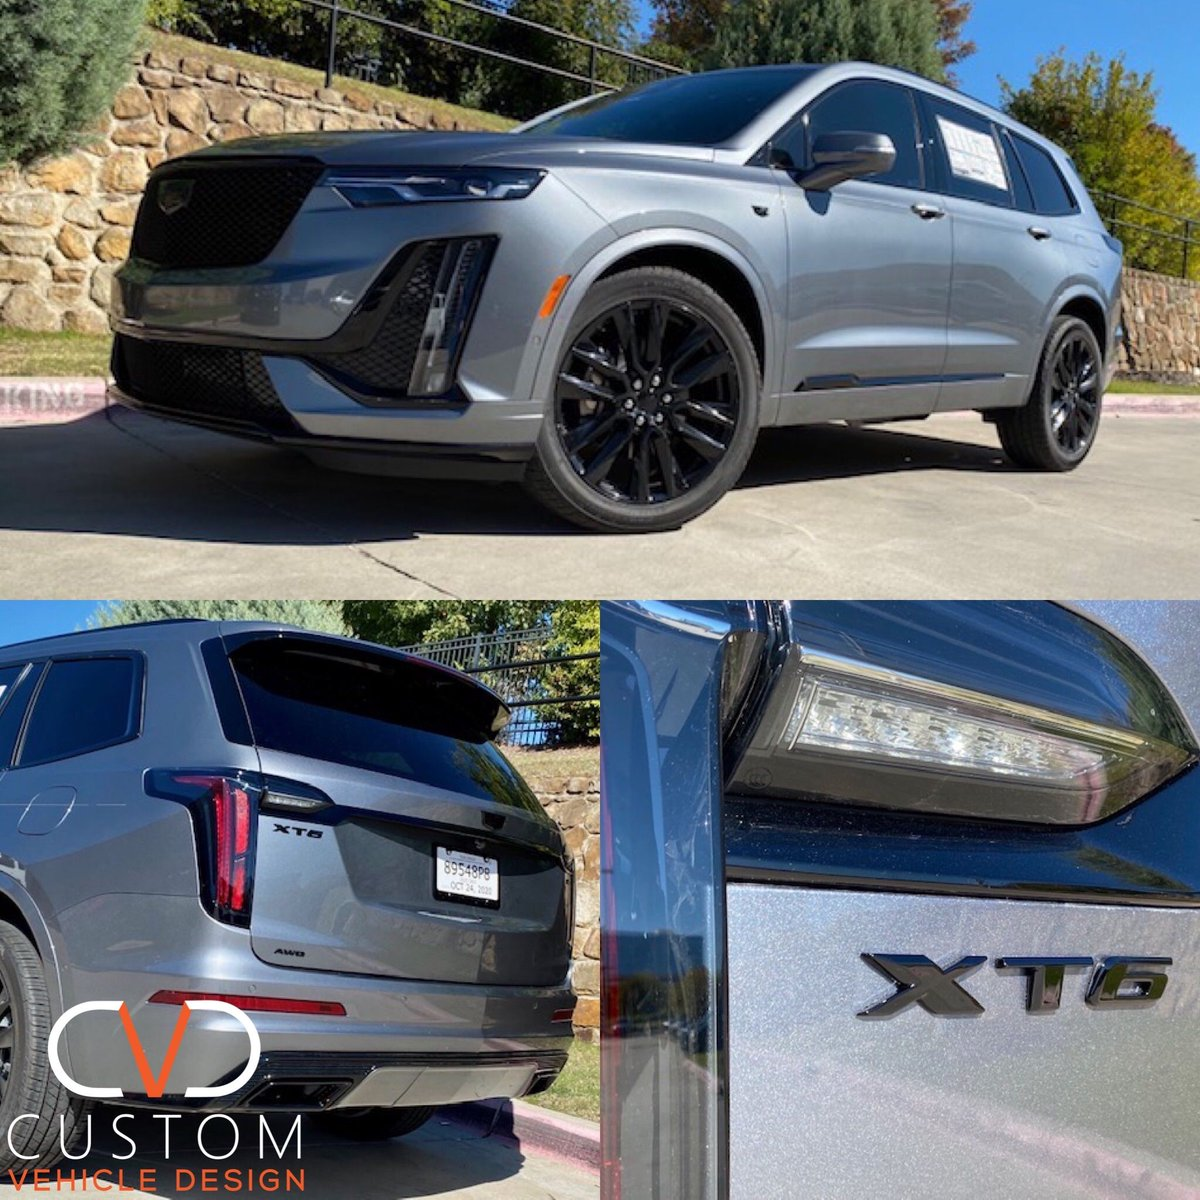 2021 Cadillac XT6 with factory wheels #2021 #2020 #Cadillac #XT6 #CadillacXT6 #Blackedout #Custom #CVDauto #CVD #CustomVehicleDesign